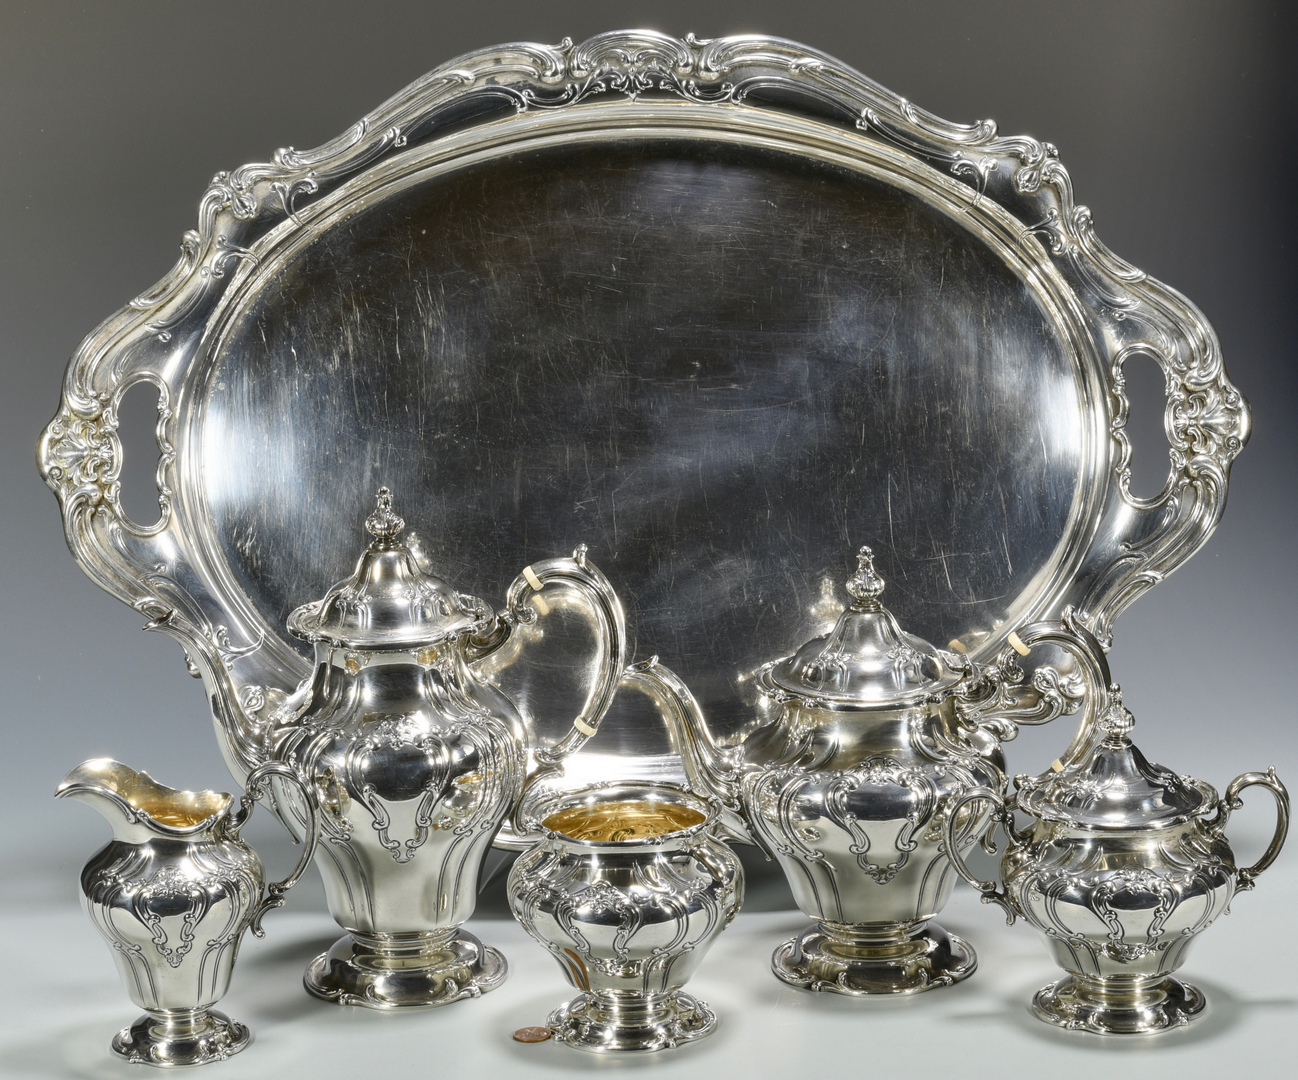 Lot 46 Gorham Chantilly Sterling Tray Amp Tea Set